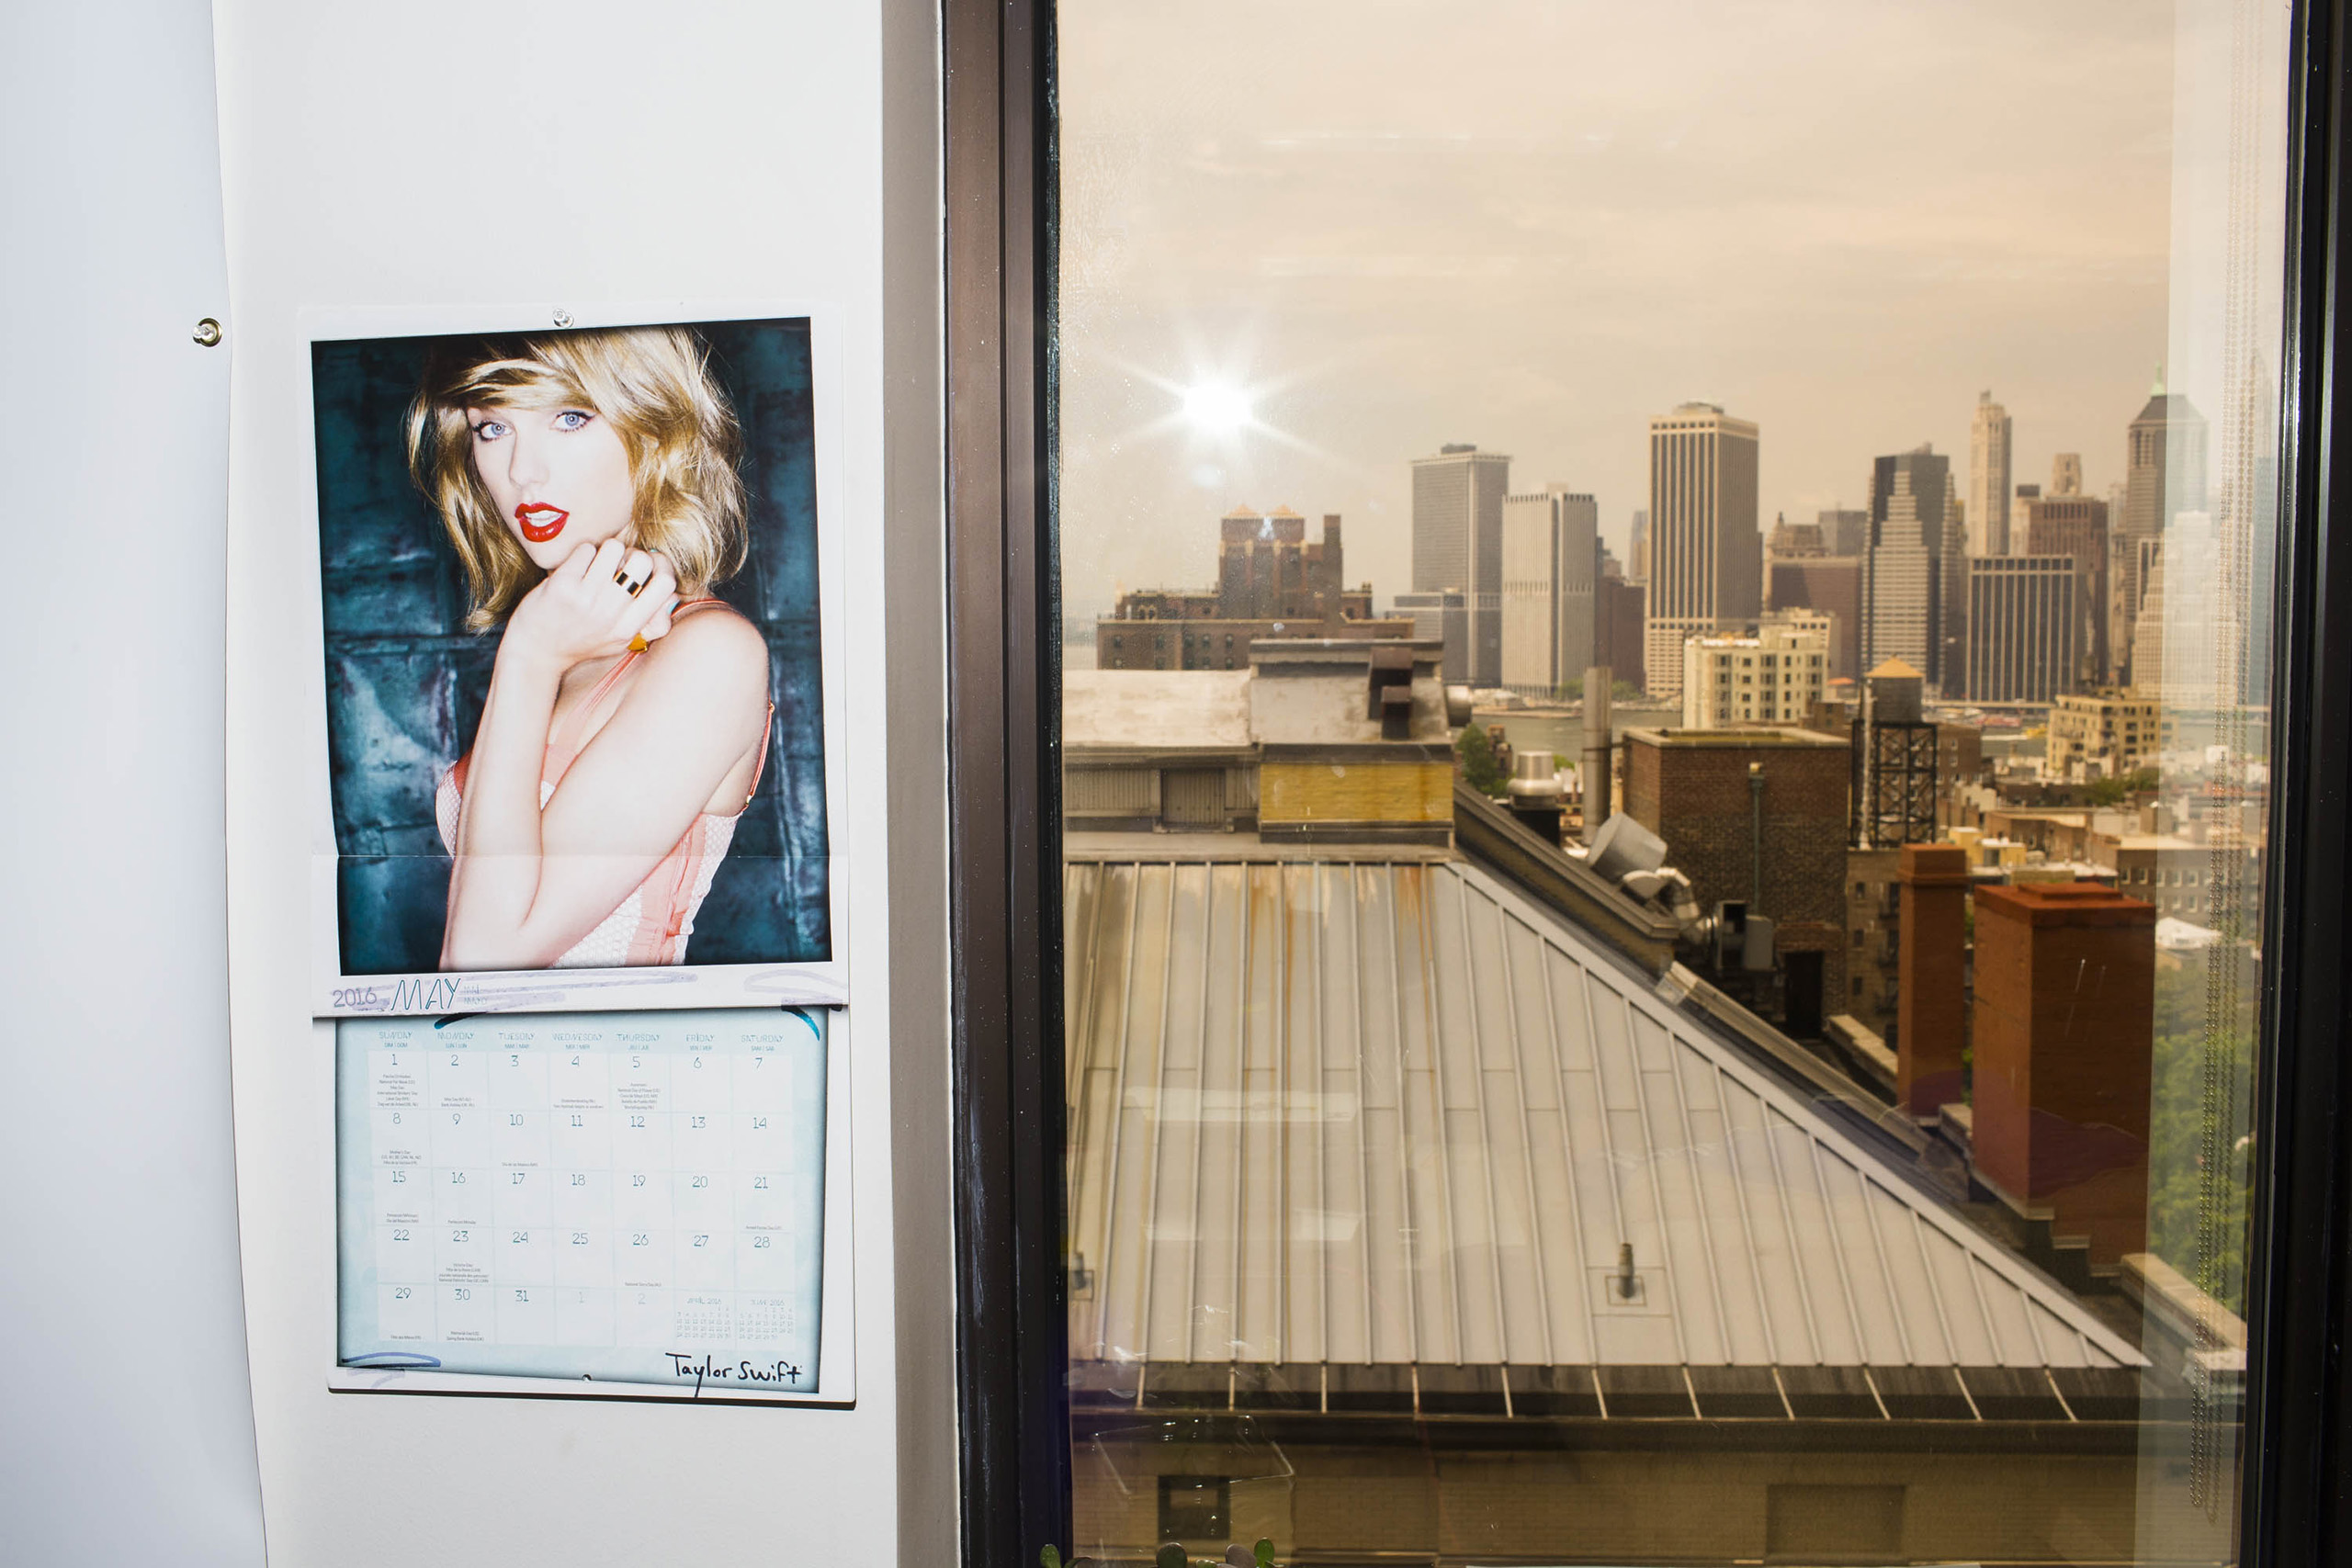 A Taylor Swift calendar hangs Inside the campaign headquarters of Hillary Clinton on May 24, 2016, in Brooklyn, NY.